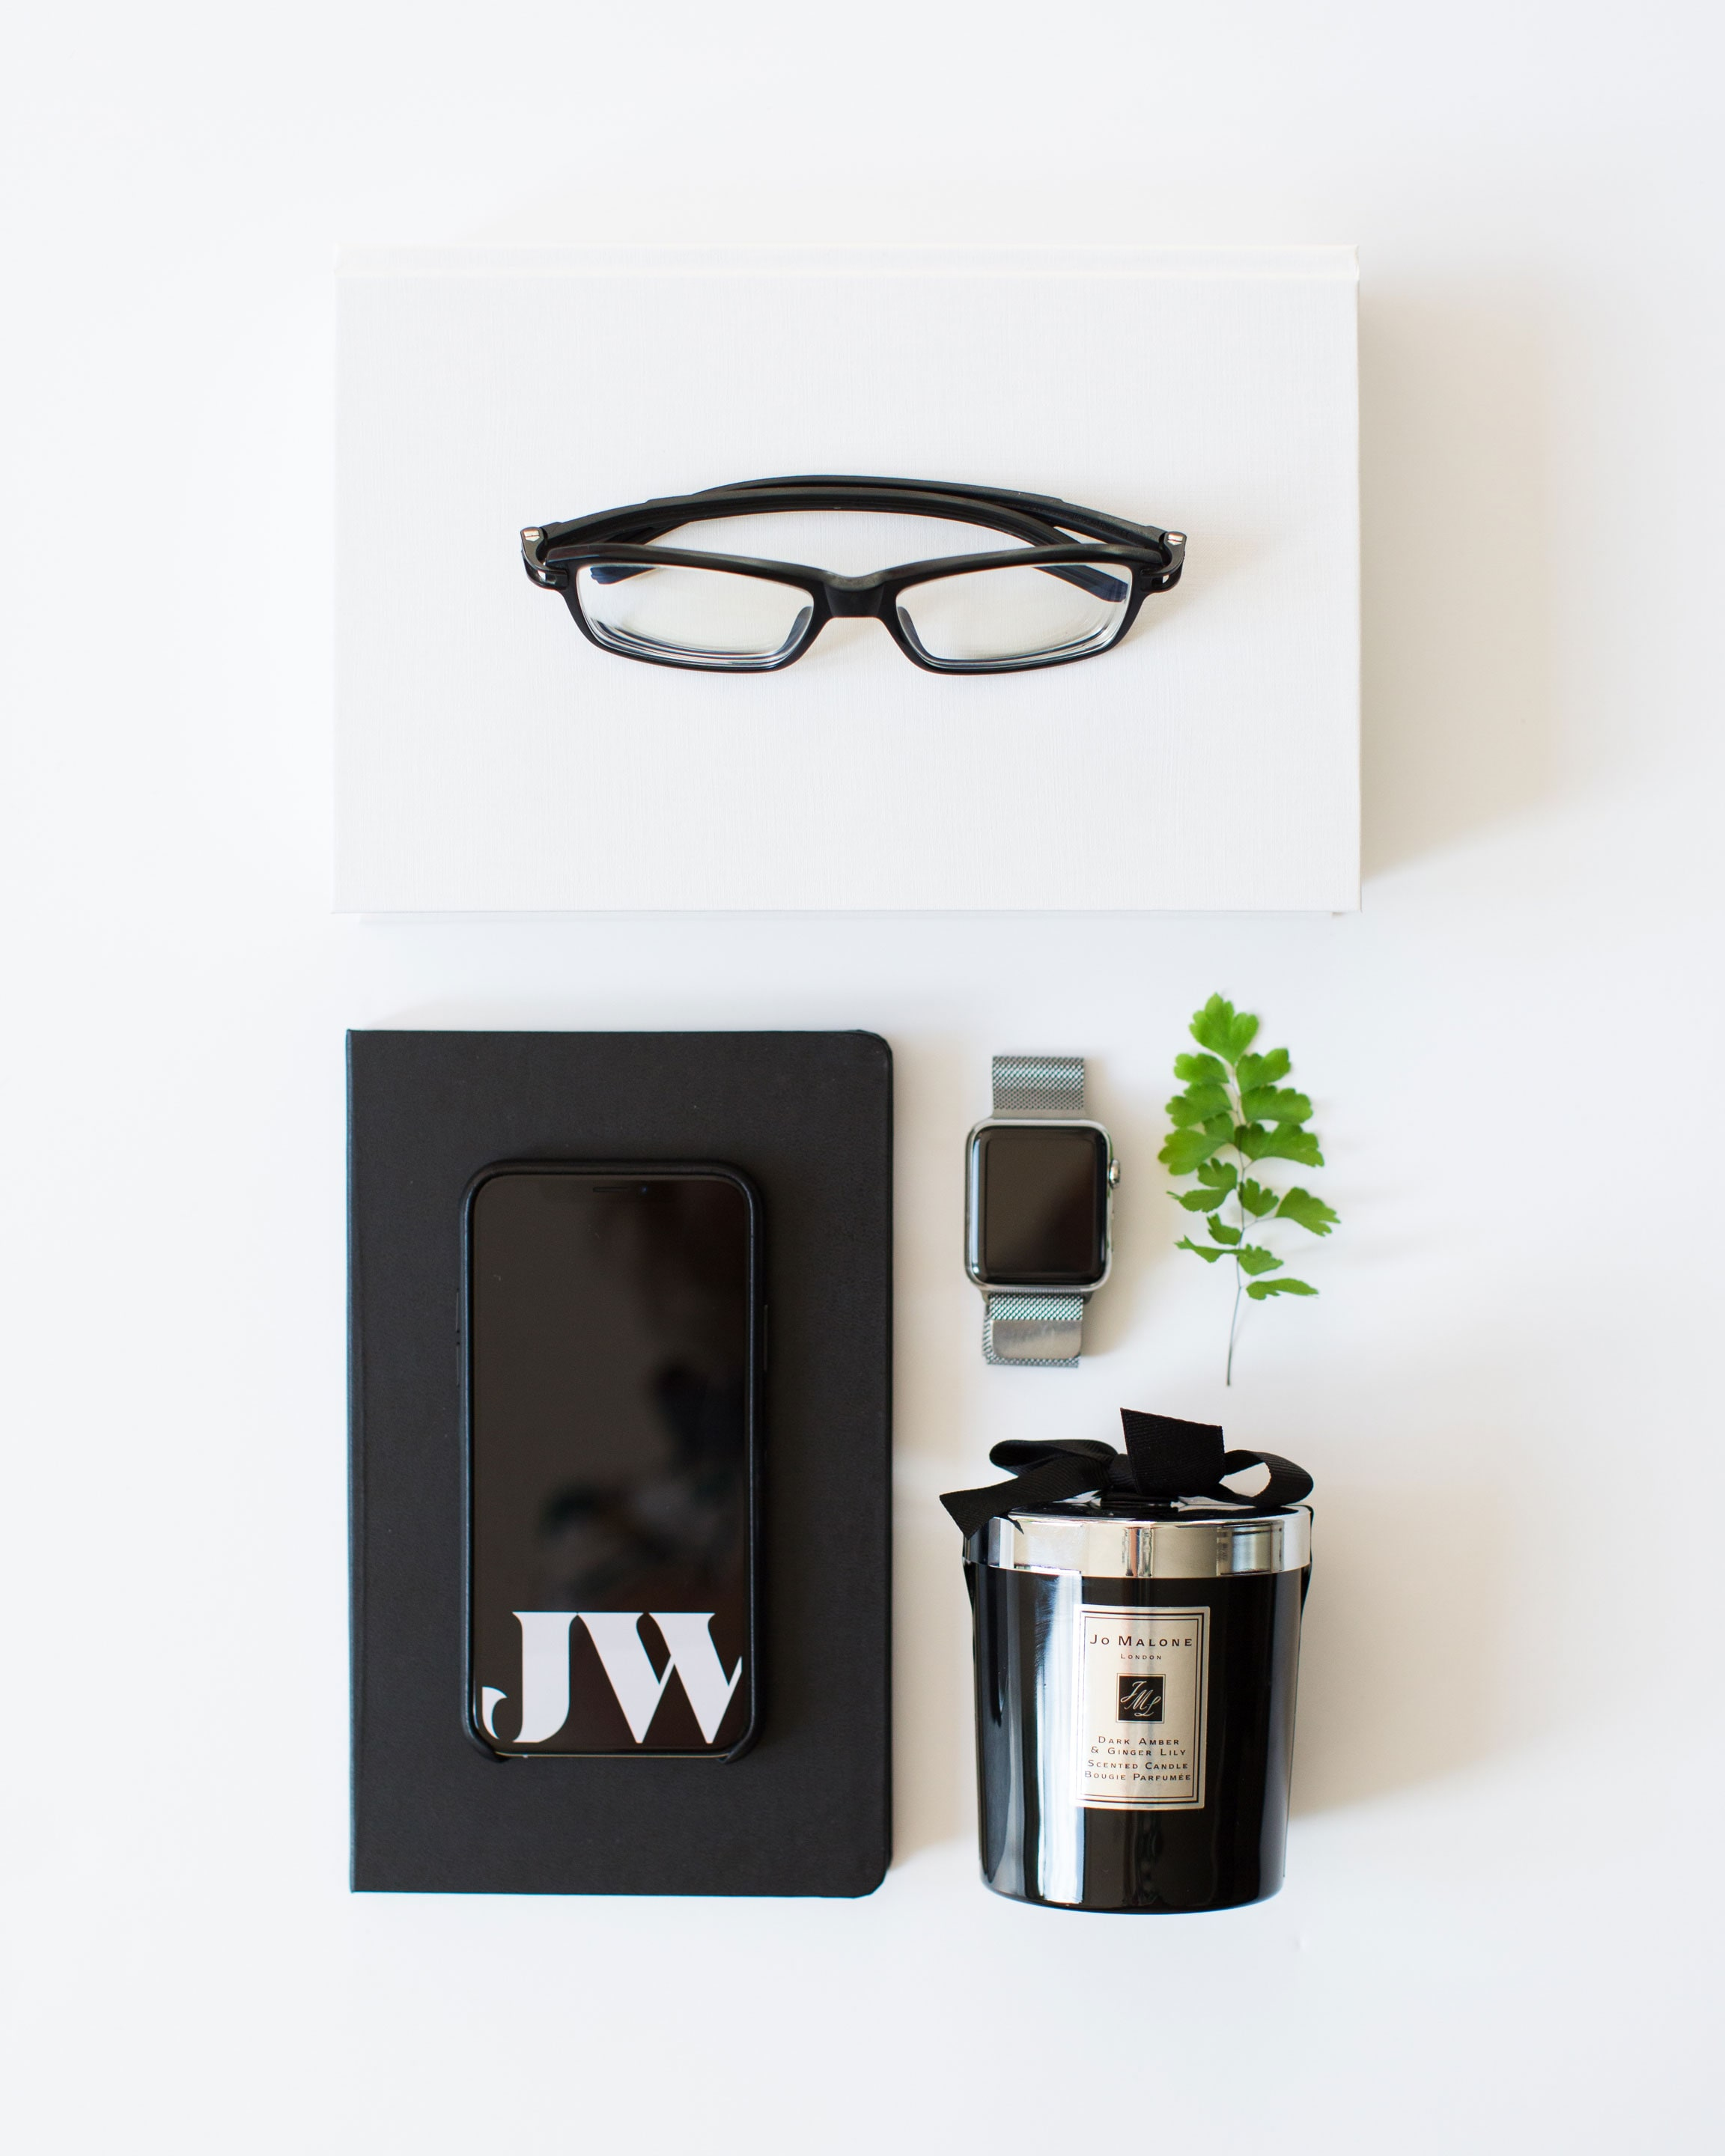 Jack Watkins branding flat lay with iPhone, Jo Malone candle, Moleskine notepad, Apple Watch, glasses and book